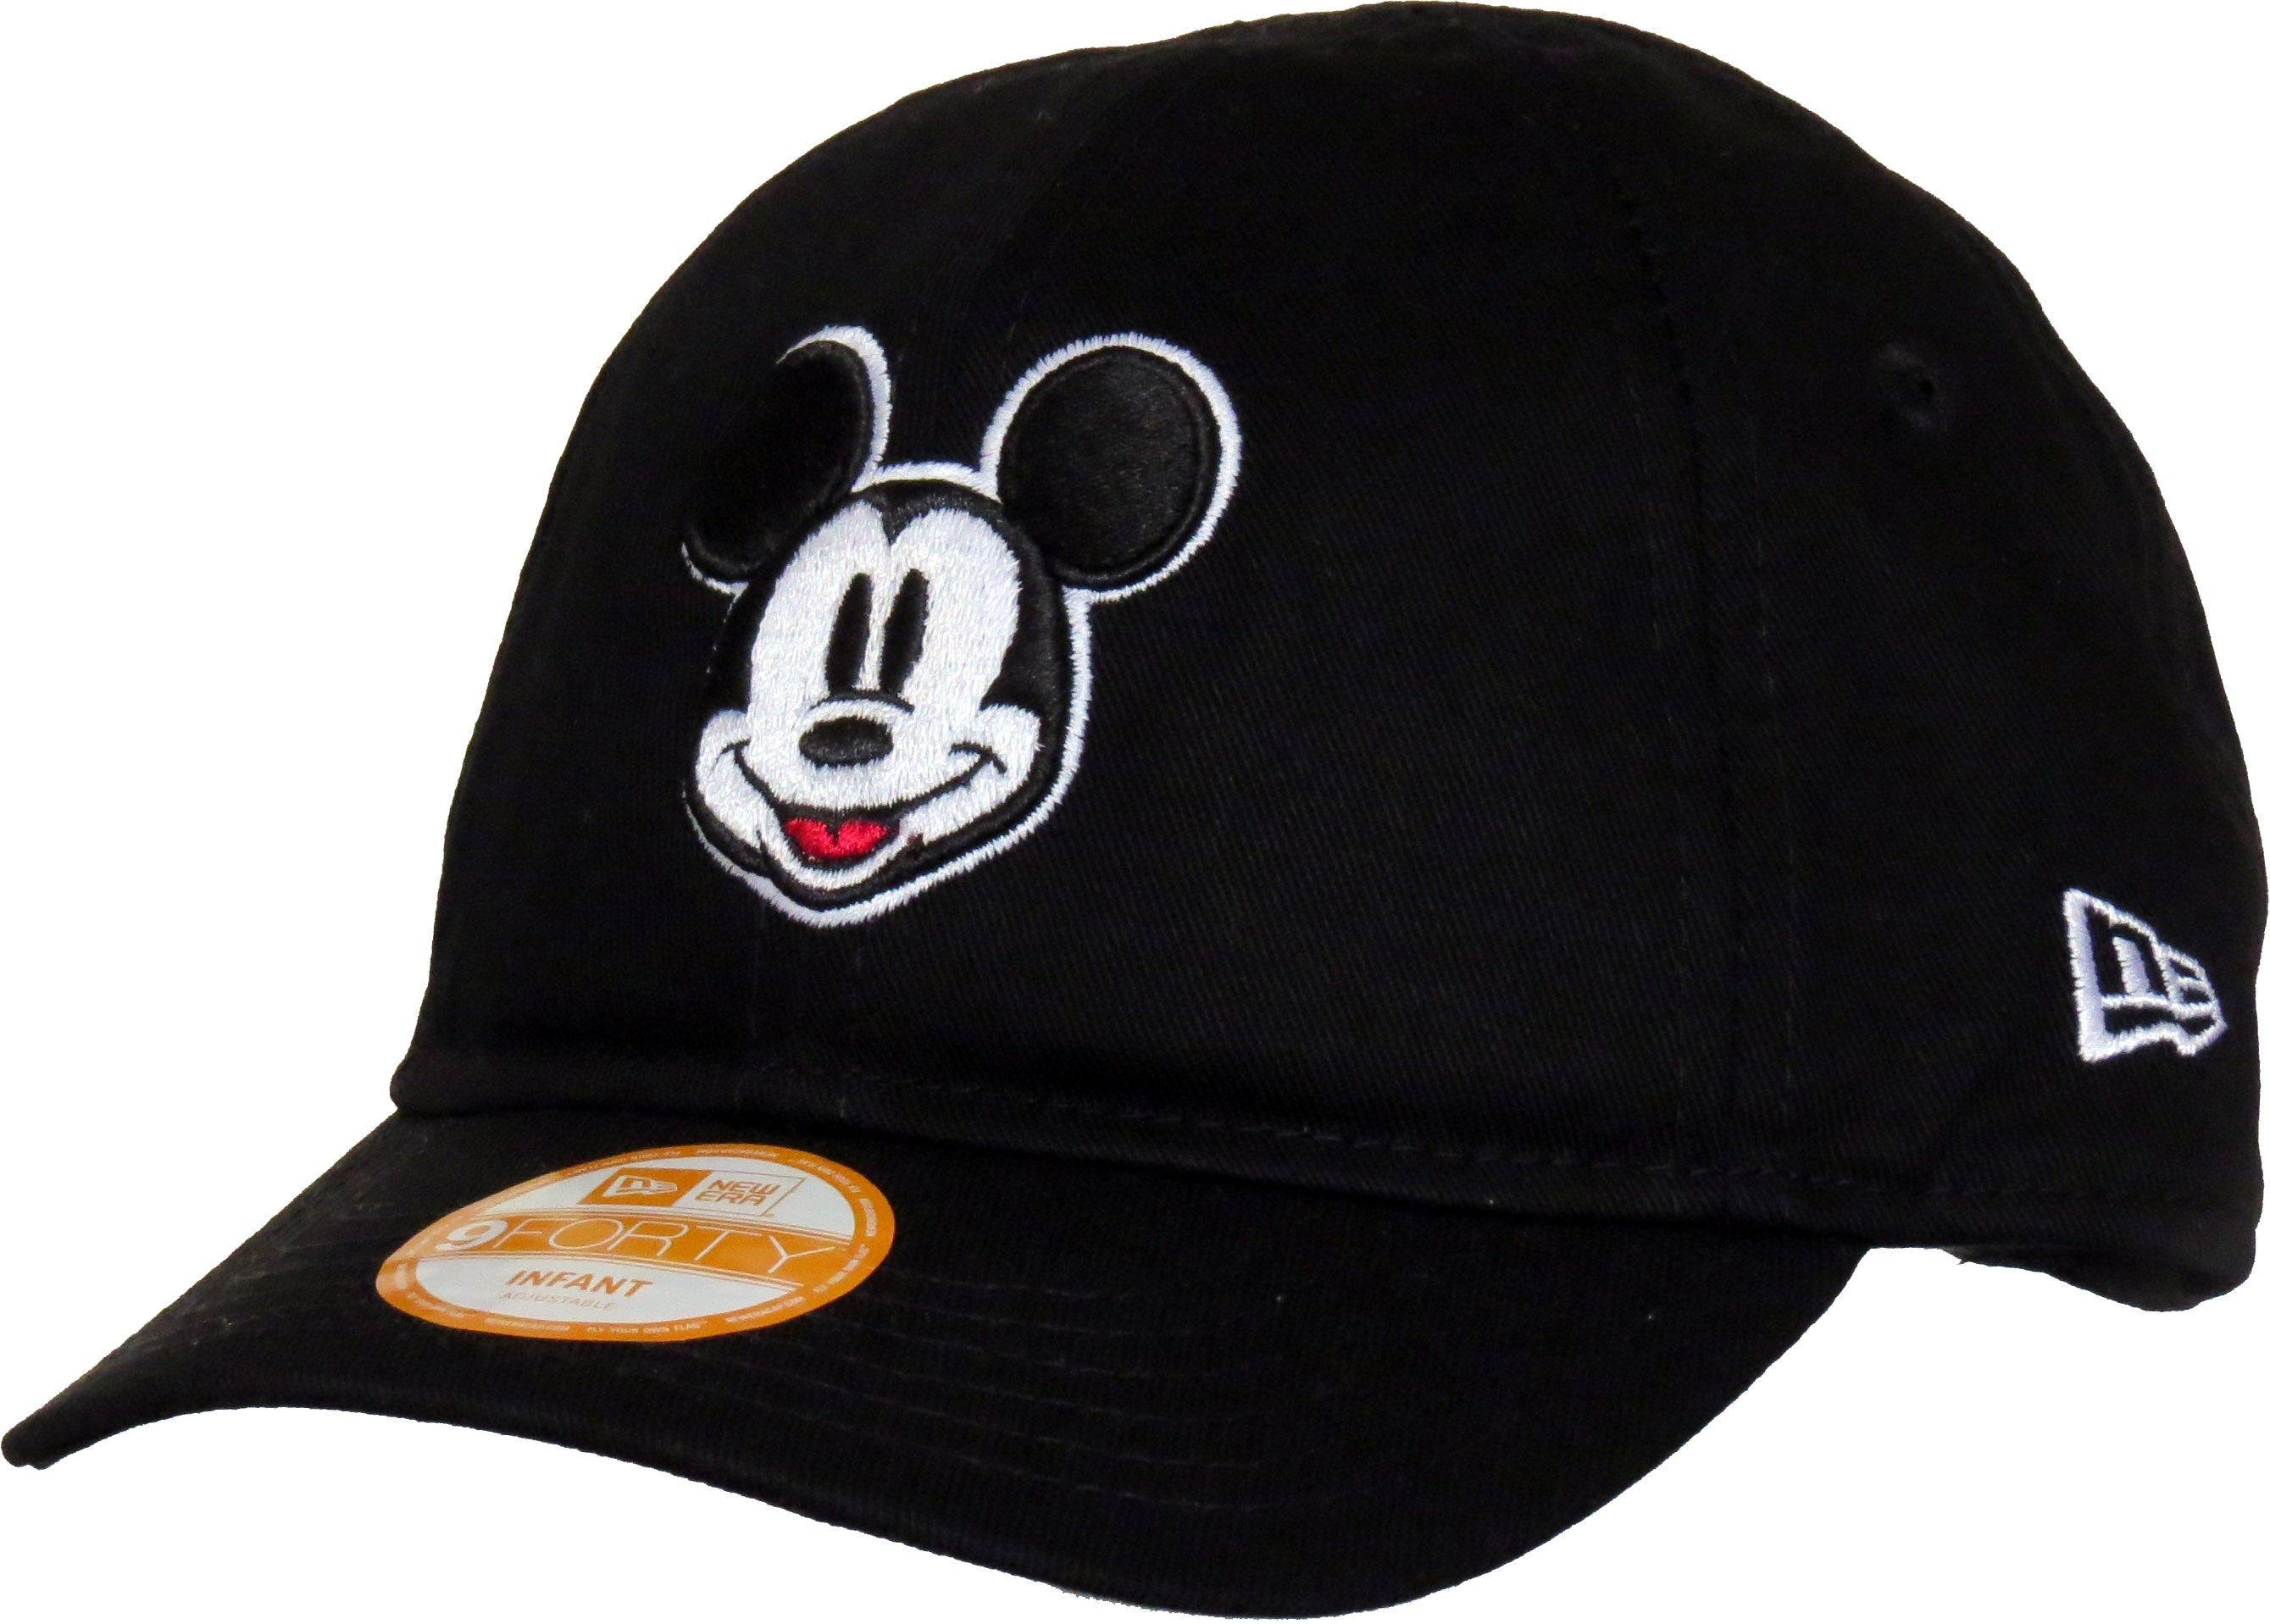 Mickey Mouse New Era 940 Stretch Fit Infants Black Cap (0-2 years) ... b96ea4825cb